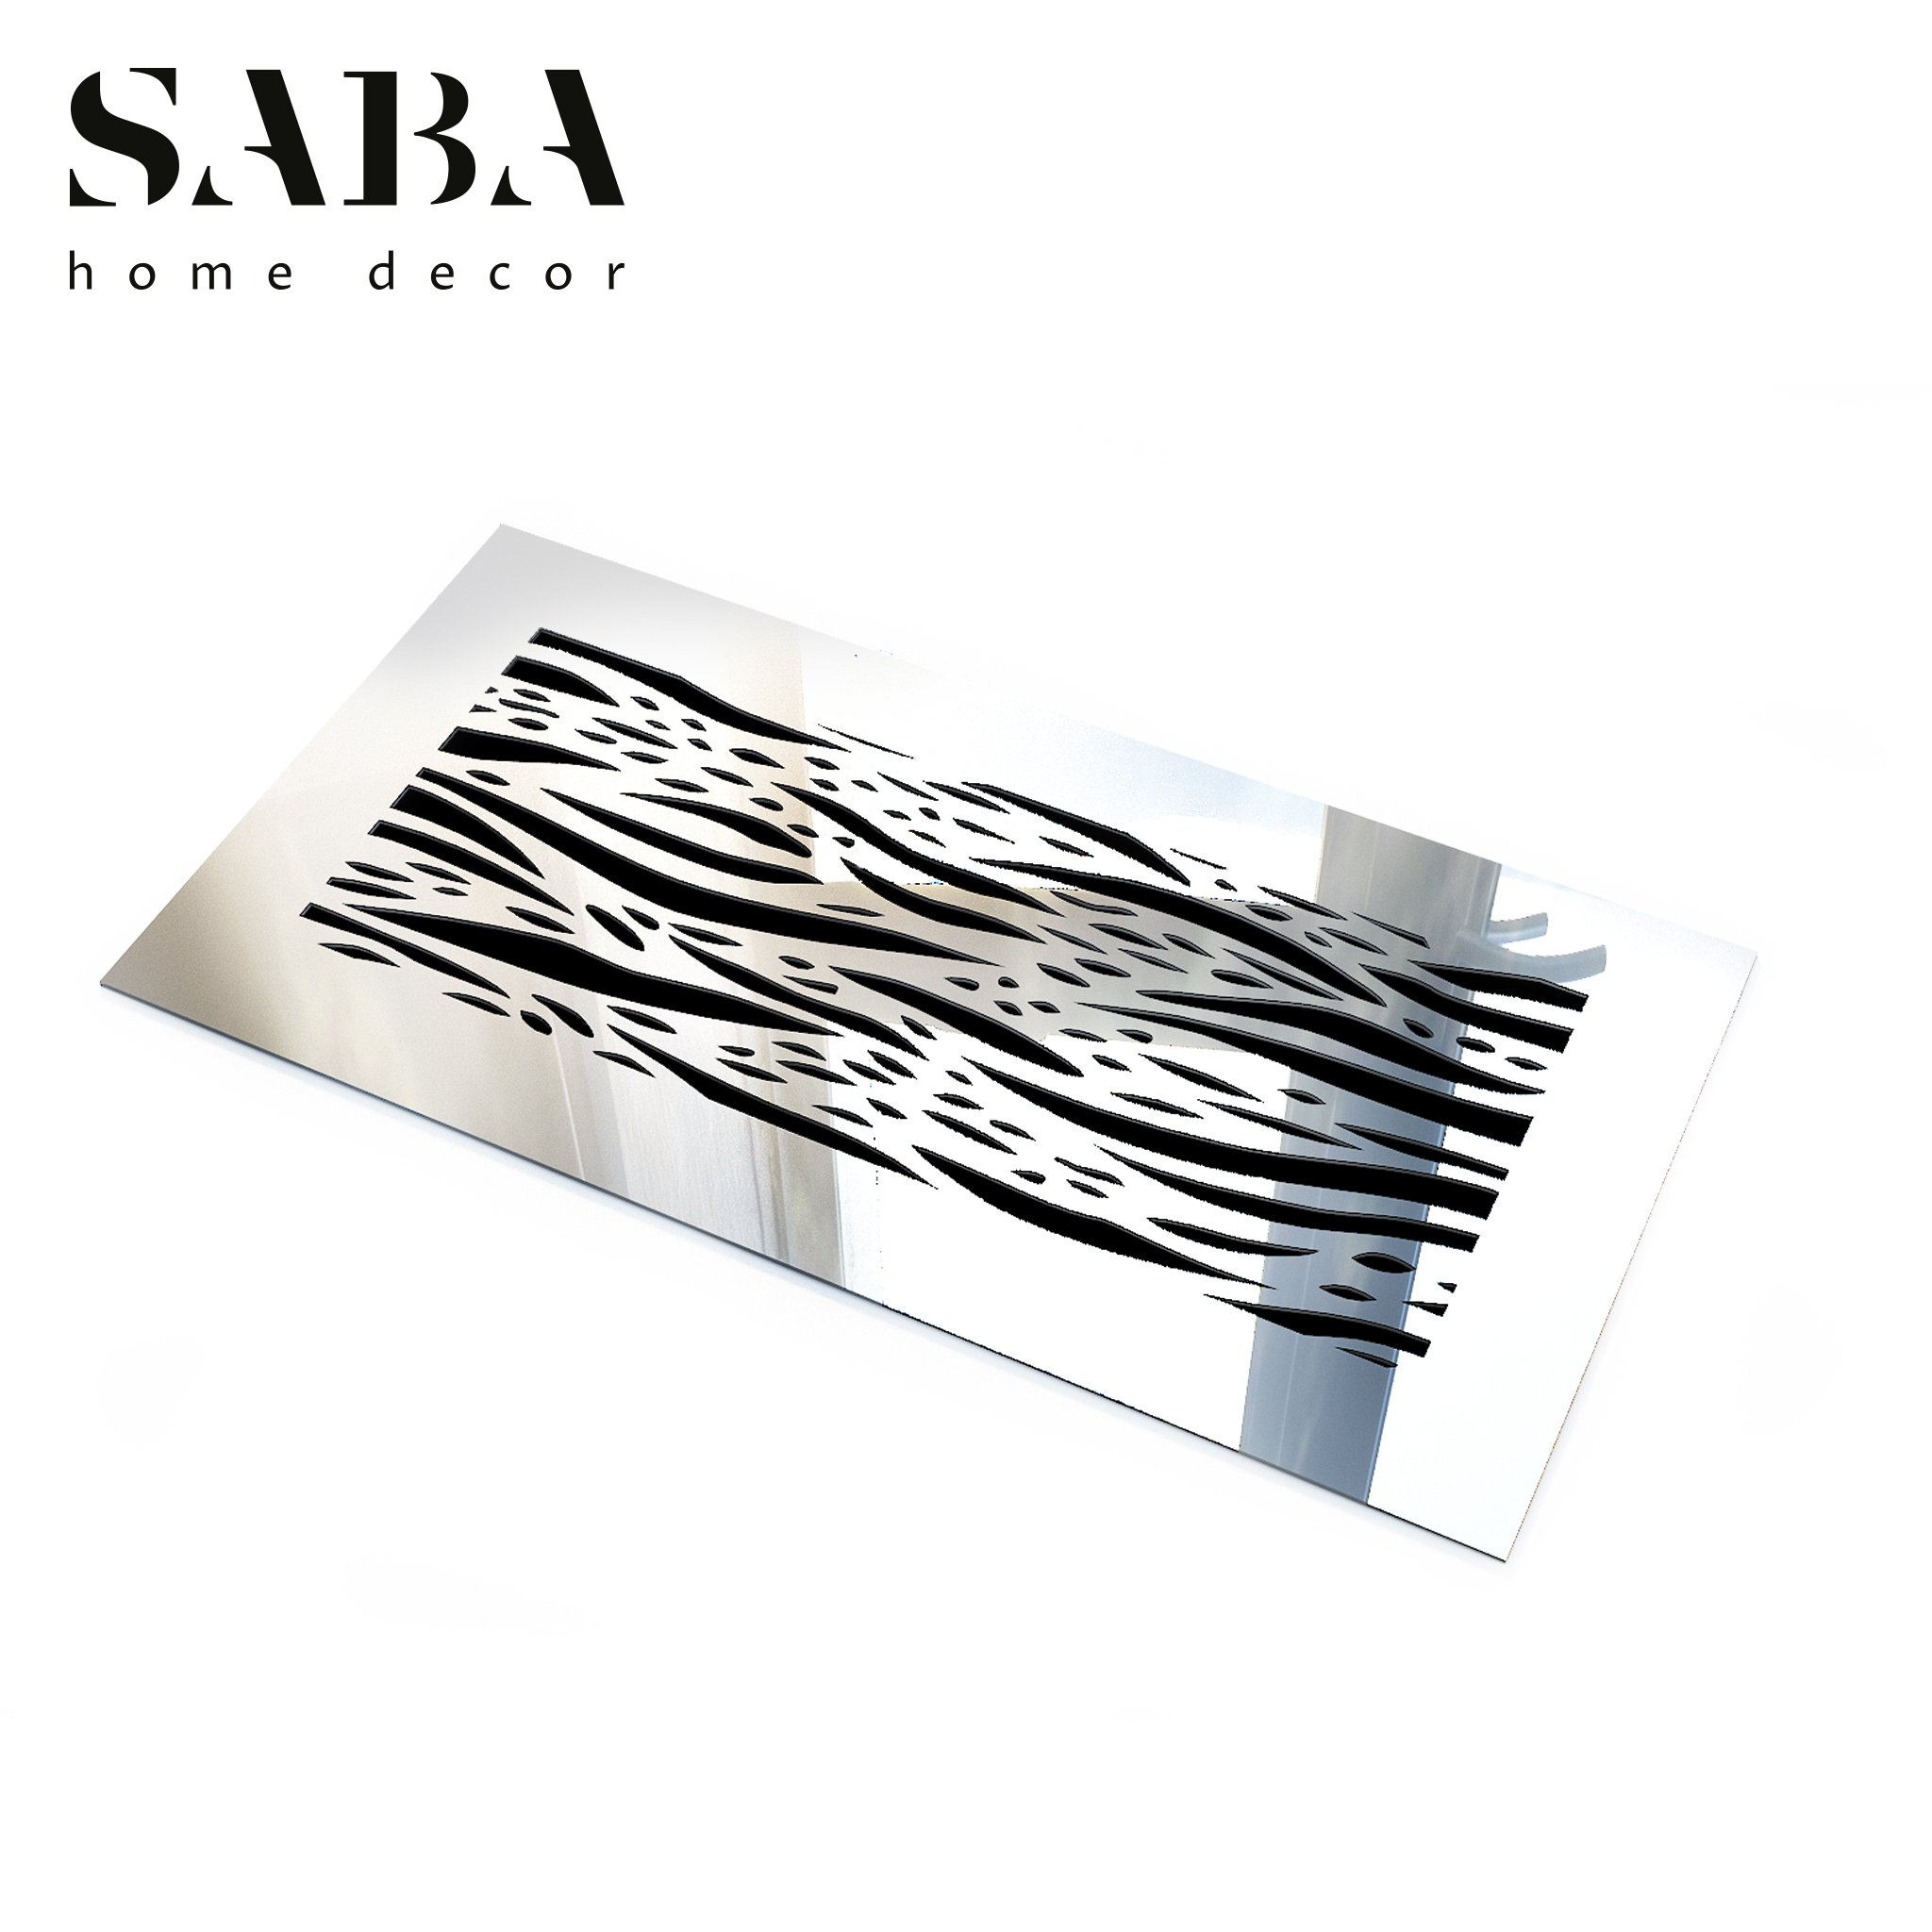 Saba Air Vent Covers Register - Acrylic Fiberglass Grille 10'' x 6'' Duct Opening (12'' x 8'' Overall) Mirror Finish Decorative Cover for Walls and Ceilings (not for Floor use), Waves by SABA Home Decor (Image #2)